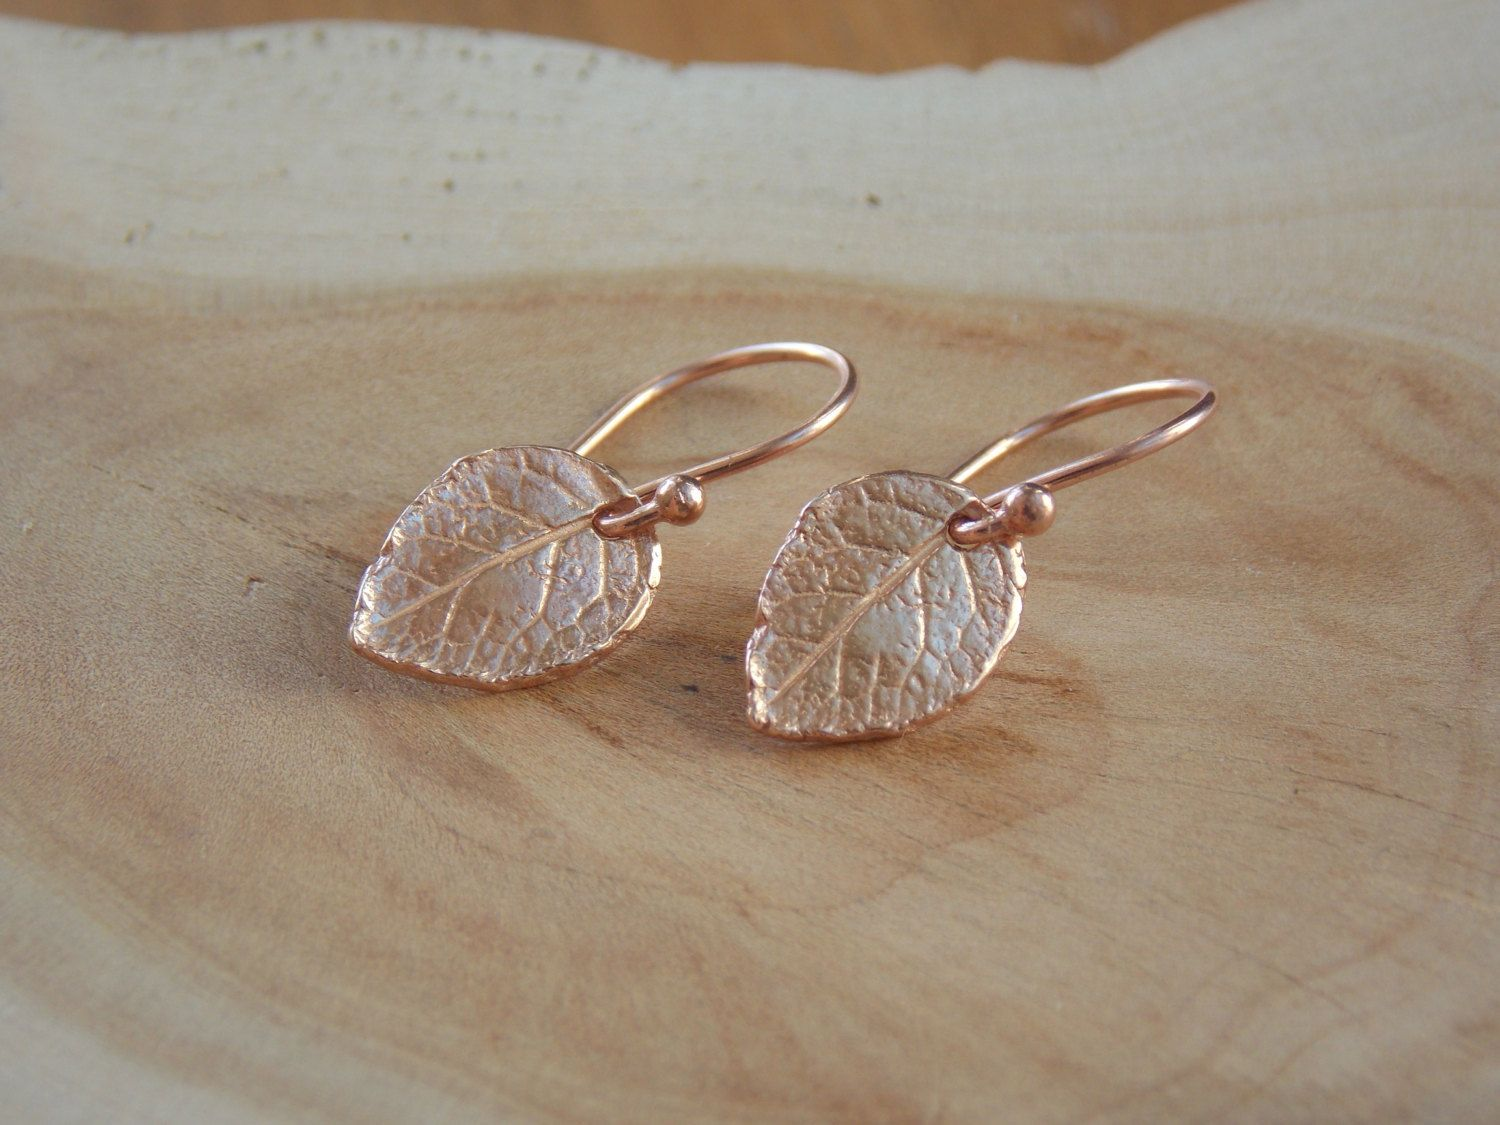 Rose Gold Leaf Earrings / Leaf Earrings / Small Rose Gold Earrings / Rustic Earrings / Rustic Earrings / Flower Petal Earring / Leaf Jewelry